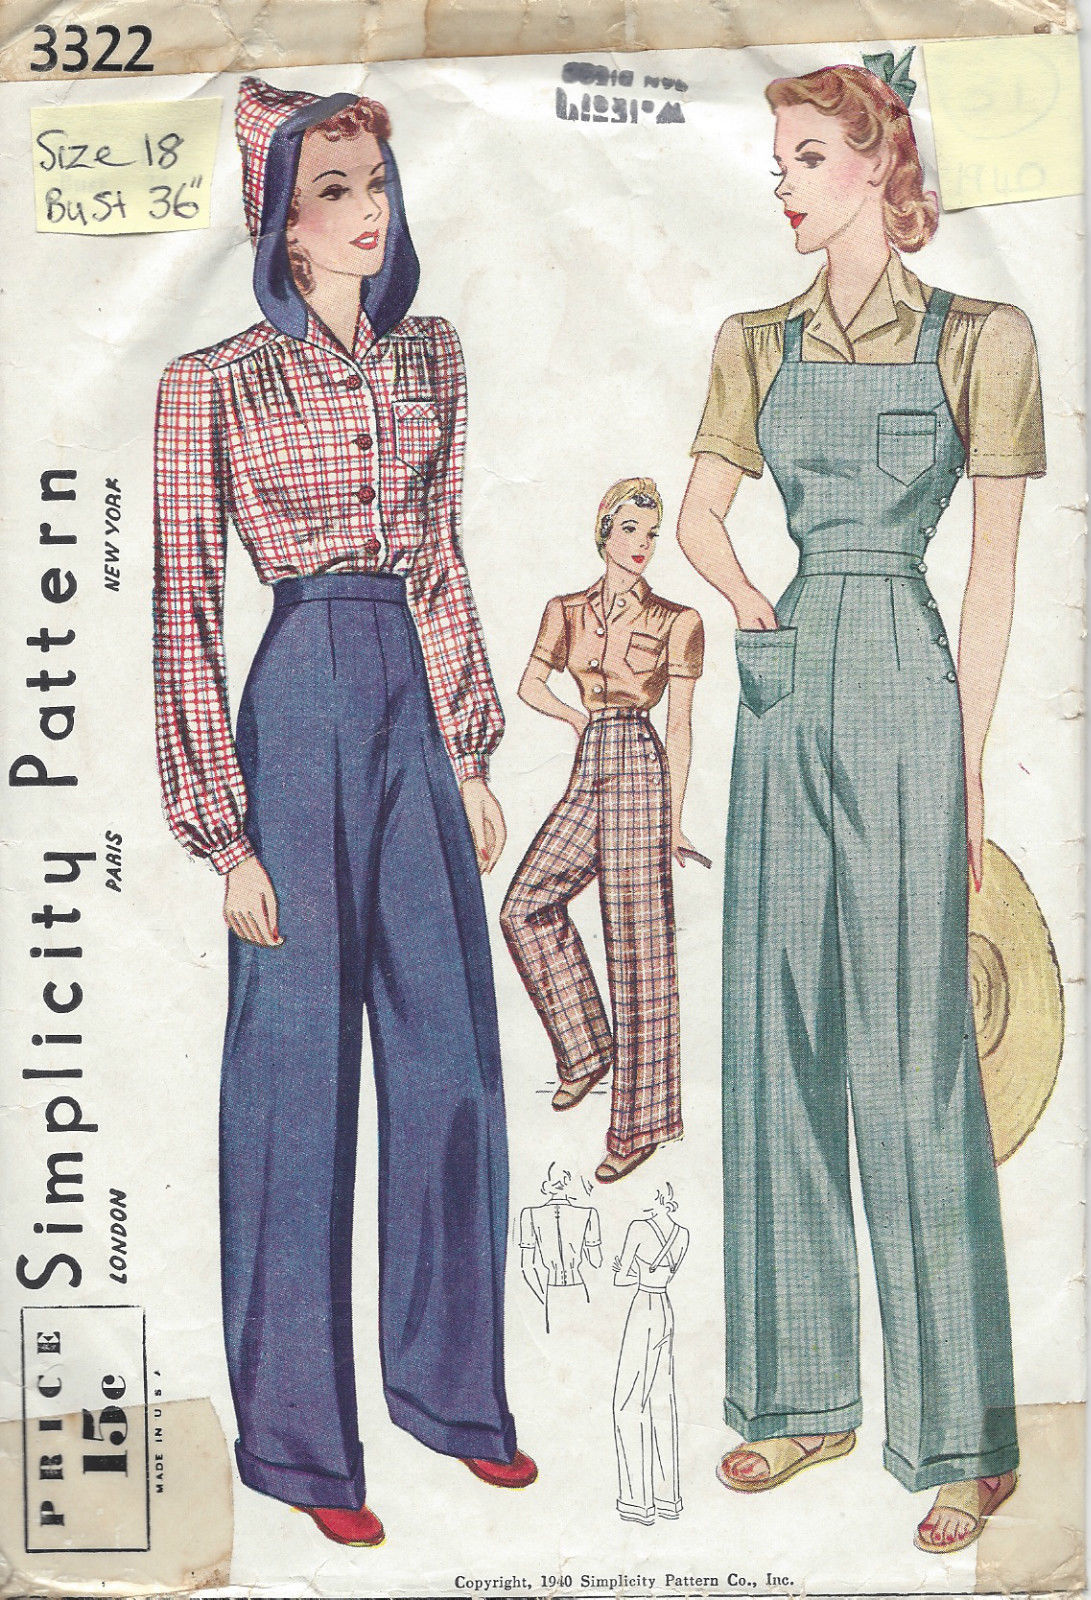 Sew Something Vintage 1940s Fashion: 1940 Vintage Sewing Pattern B36-W30 BLOUSE-TROUSERS